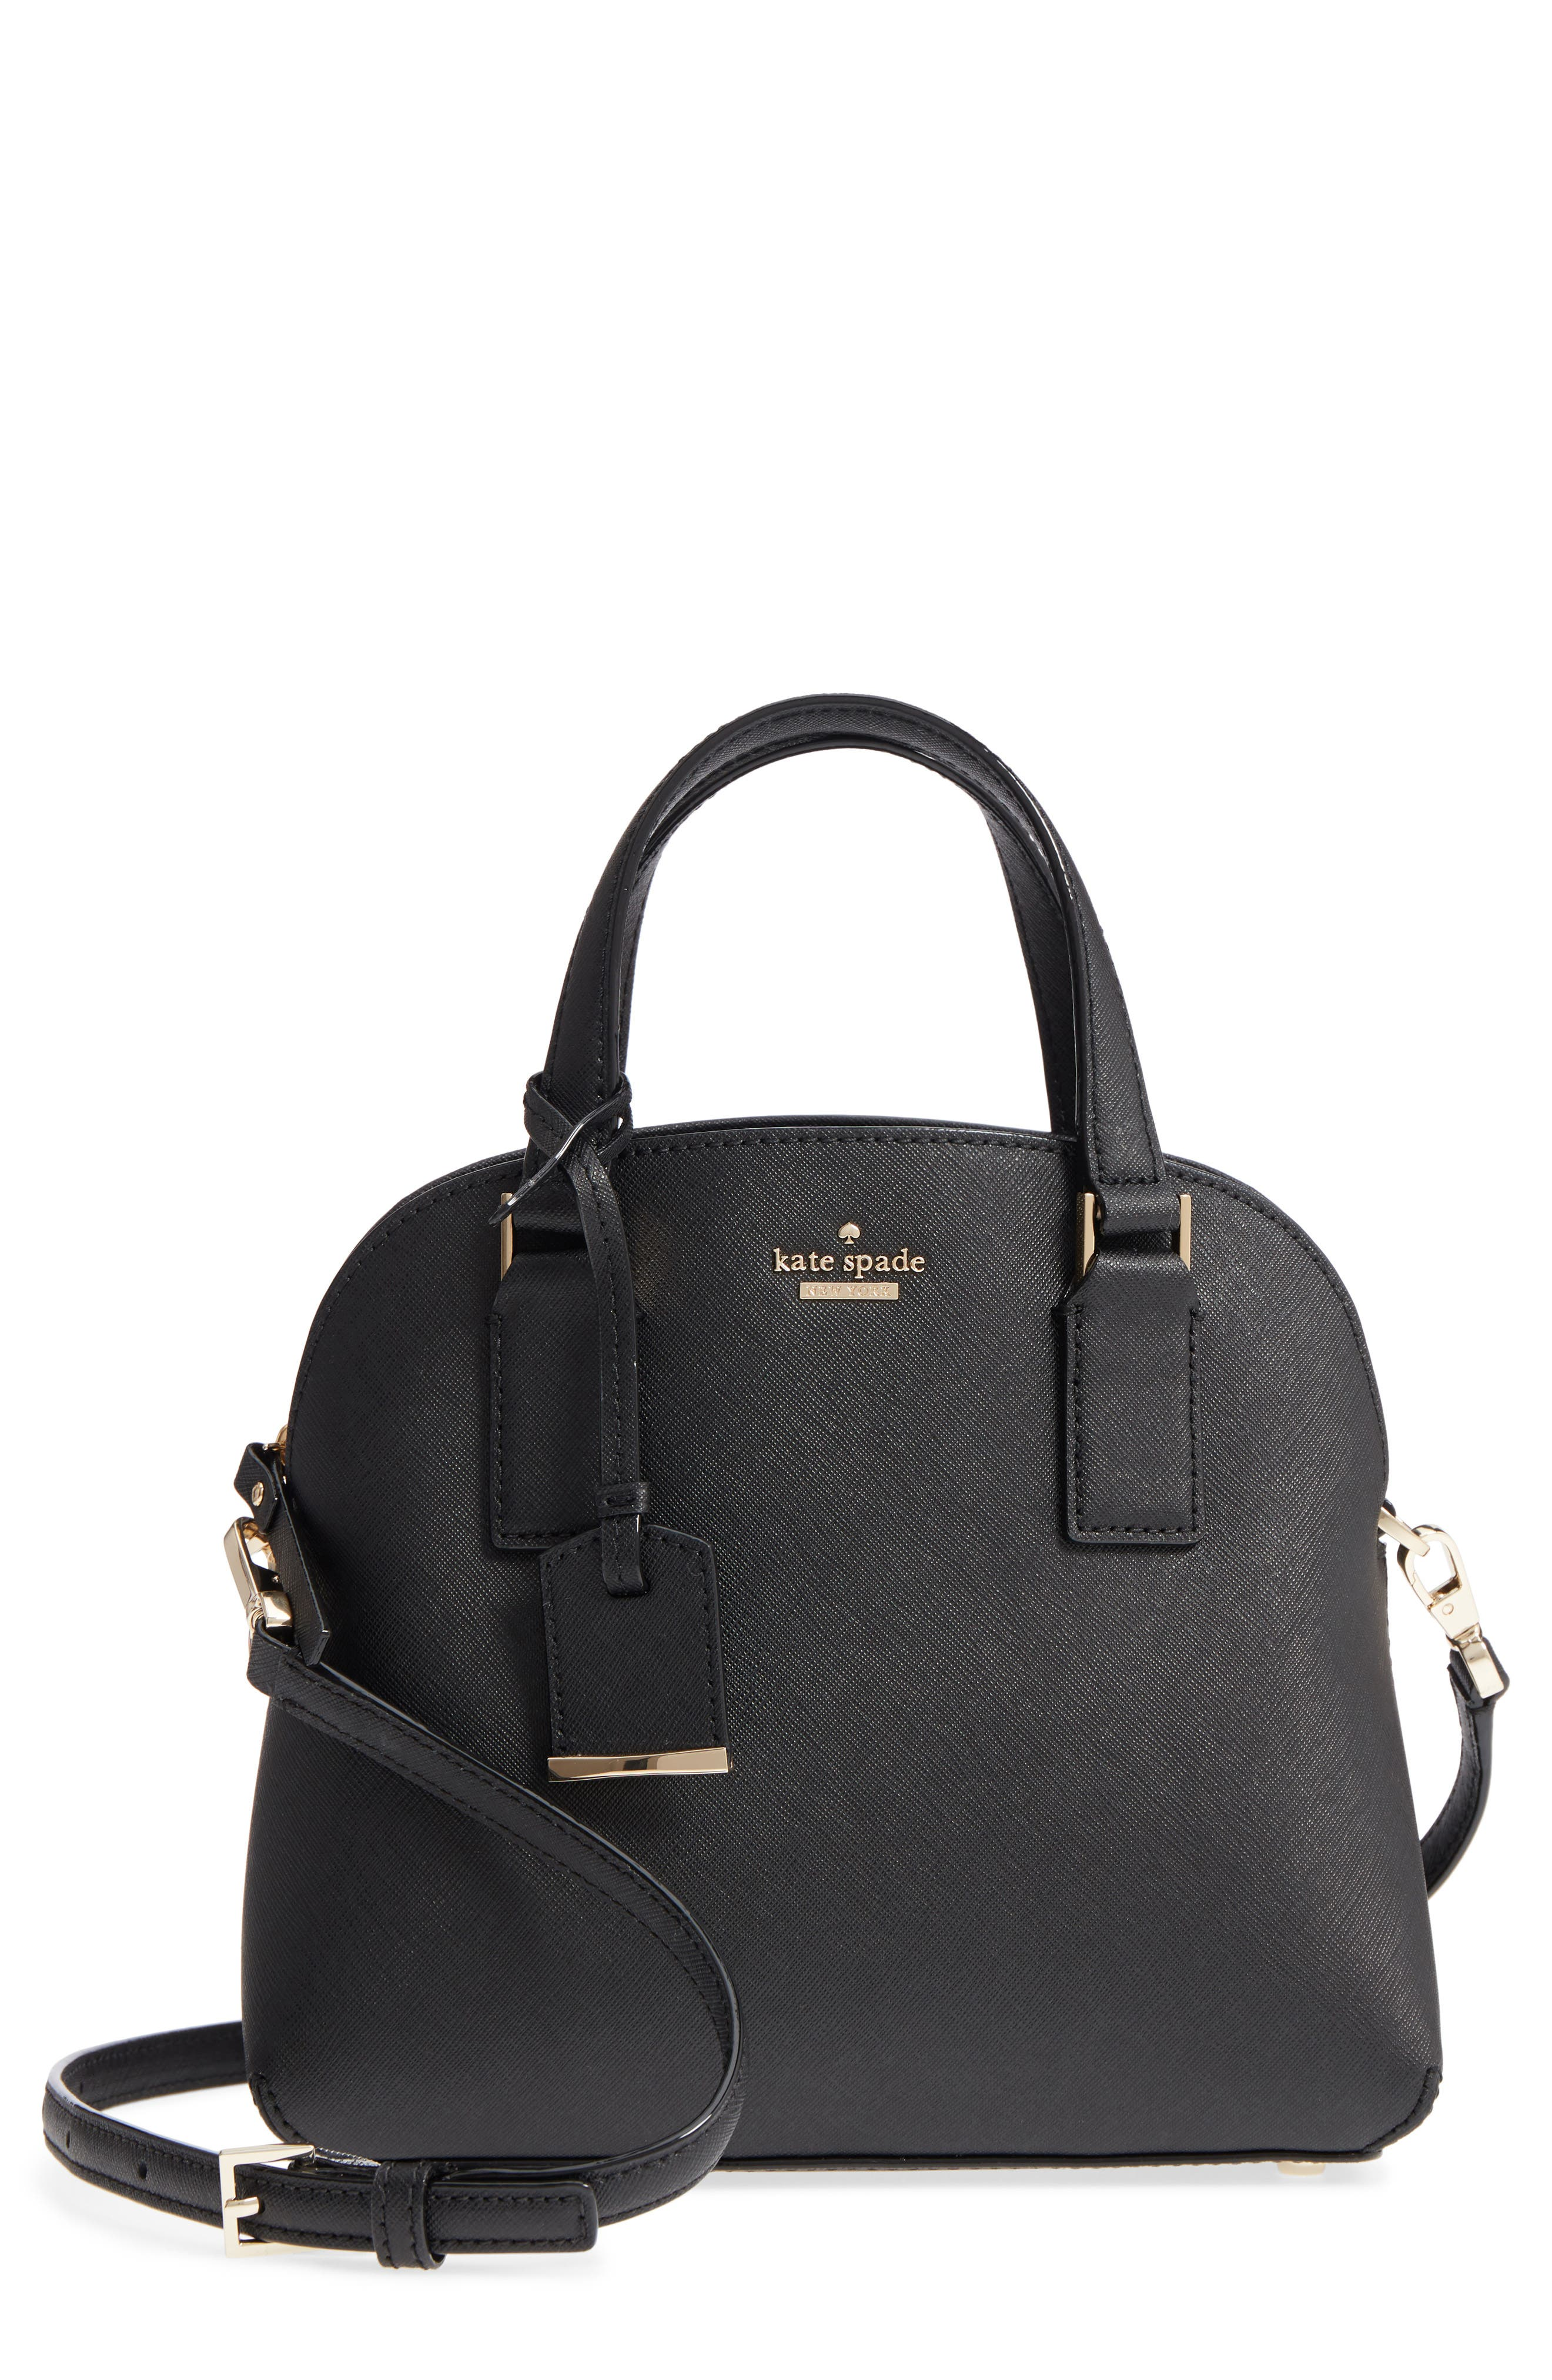 kate spade new york cameron street small lottie leather bag